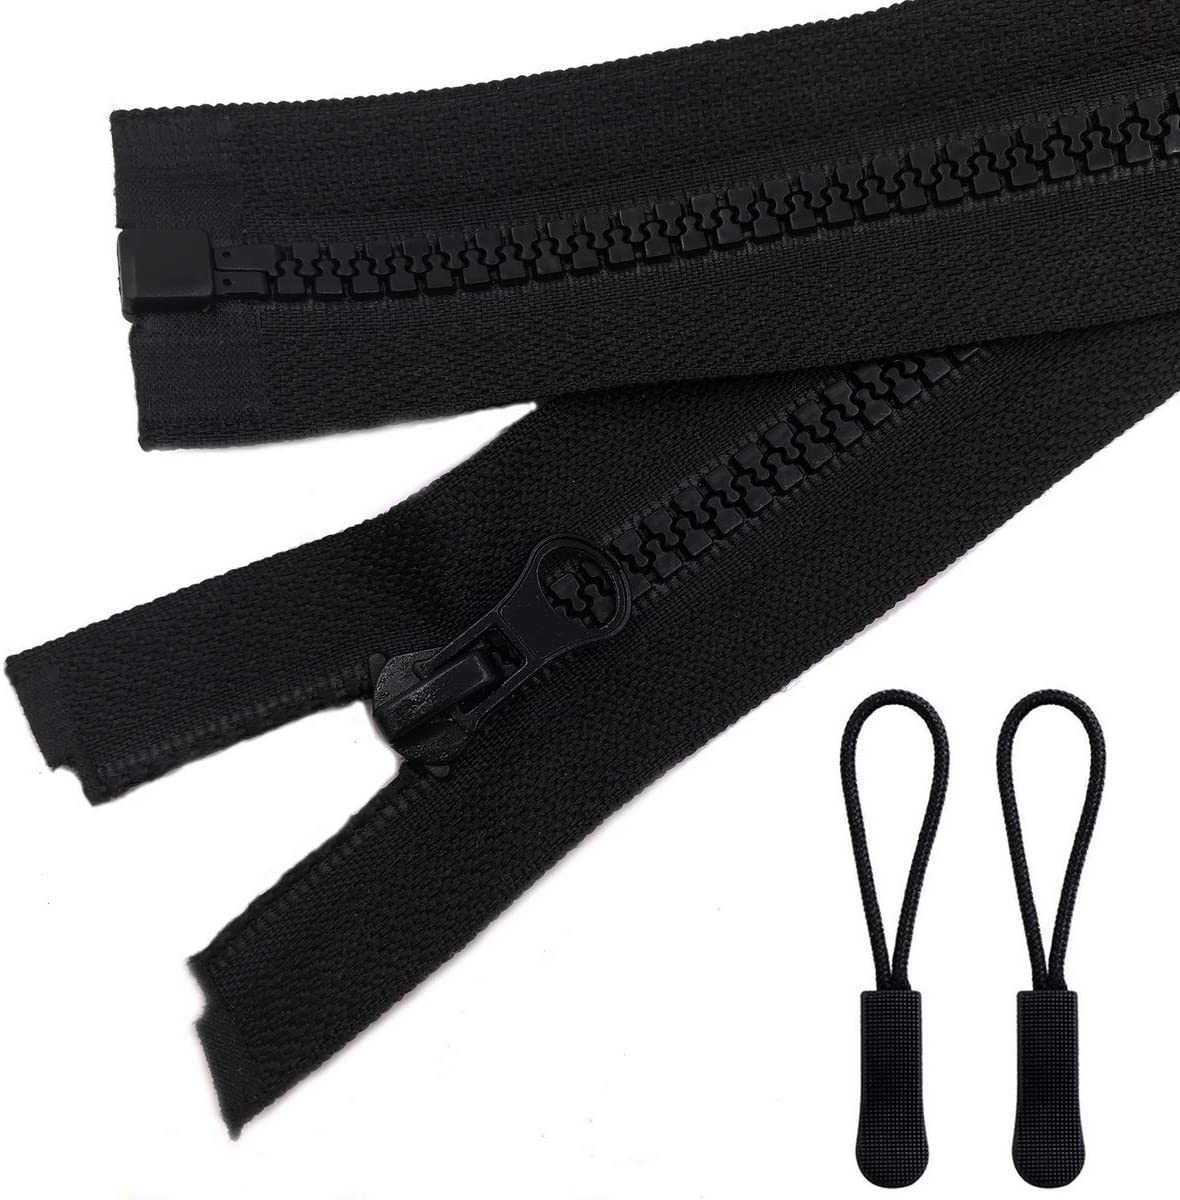 YaHoGa 2PCS #5 18 Inch Separating Jacket Zippers for Sewing Coats Jacket Zipper Black Molded Plastic Zippers Bulk 18 2pc